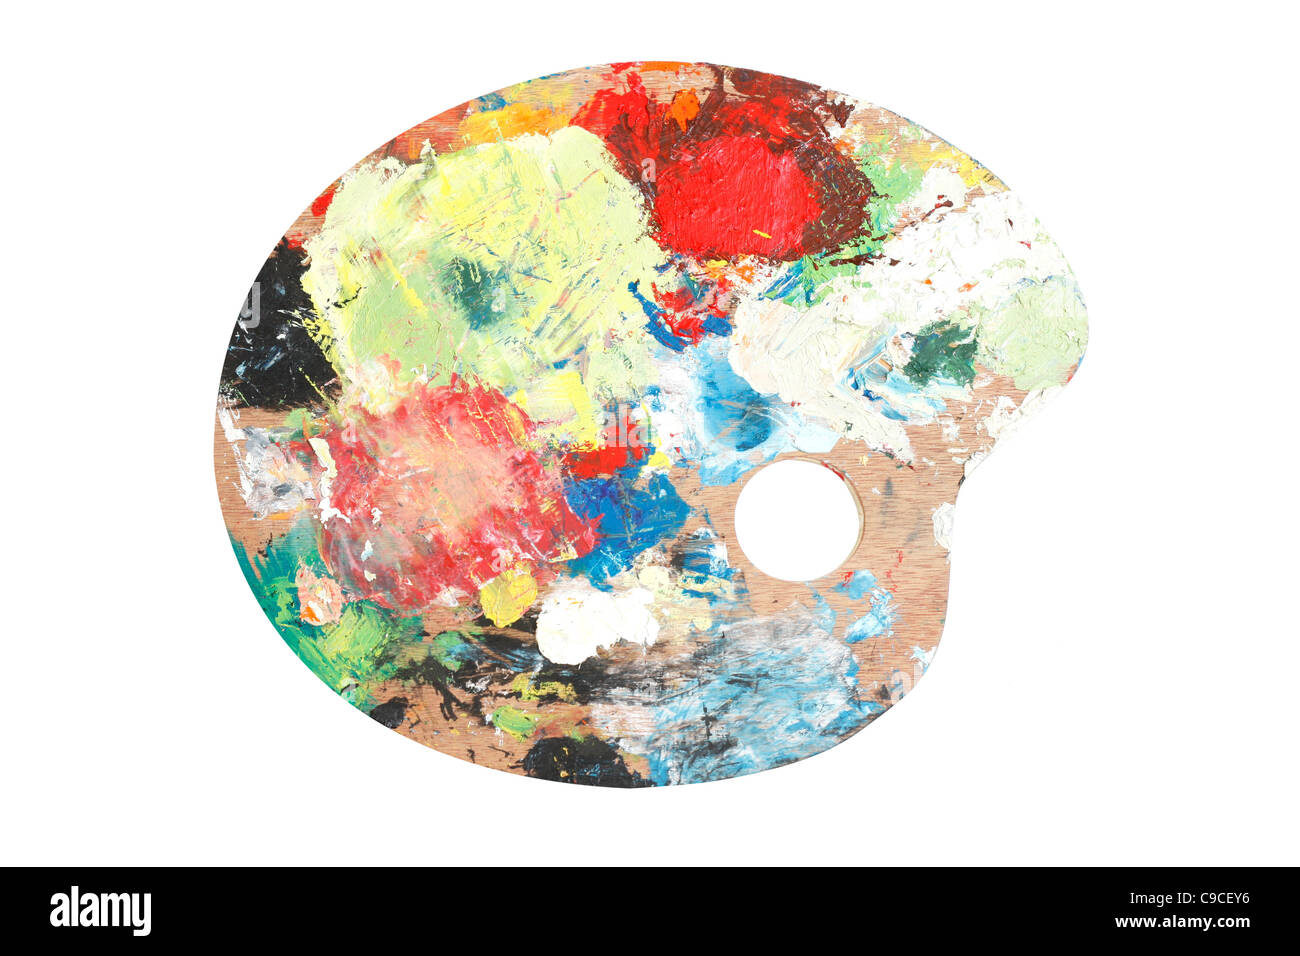 Un painters palette isolated on white Photo Stock